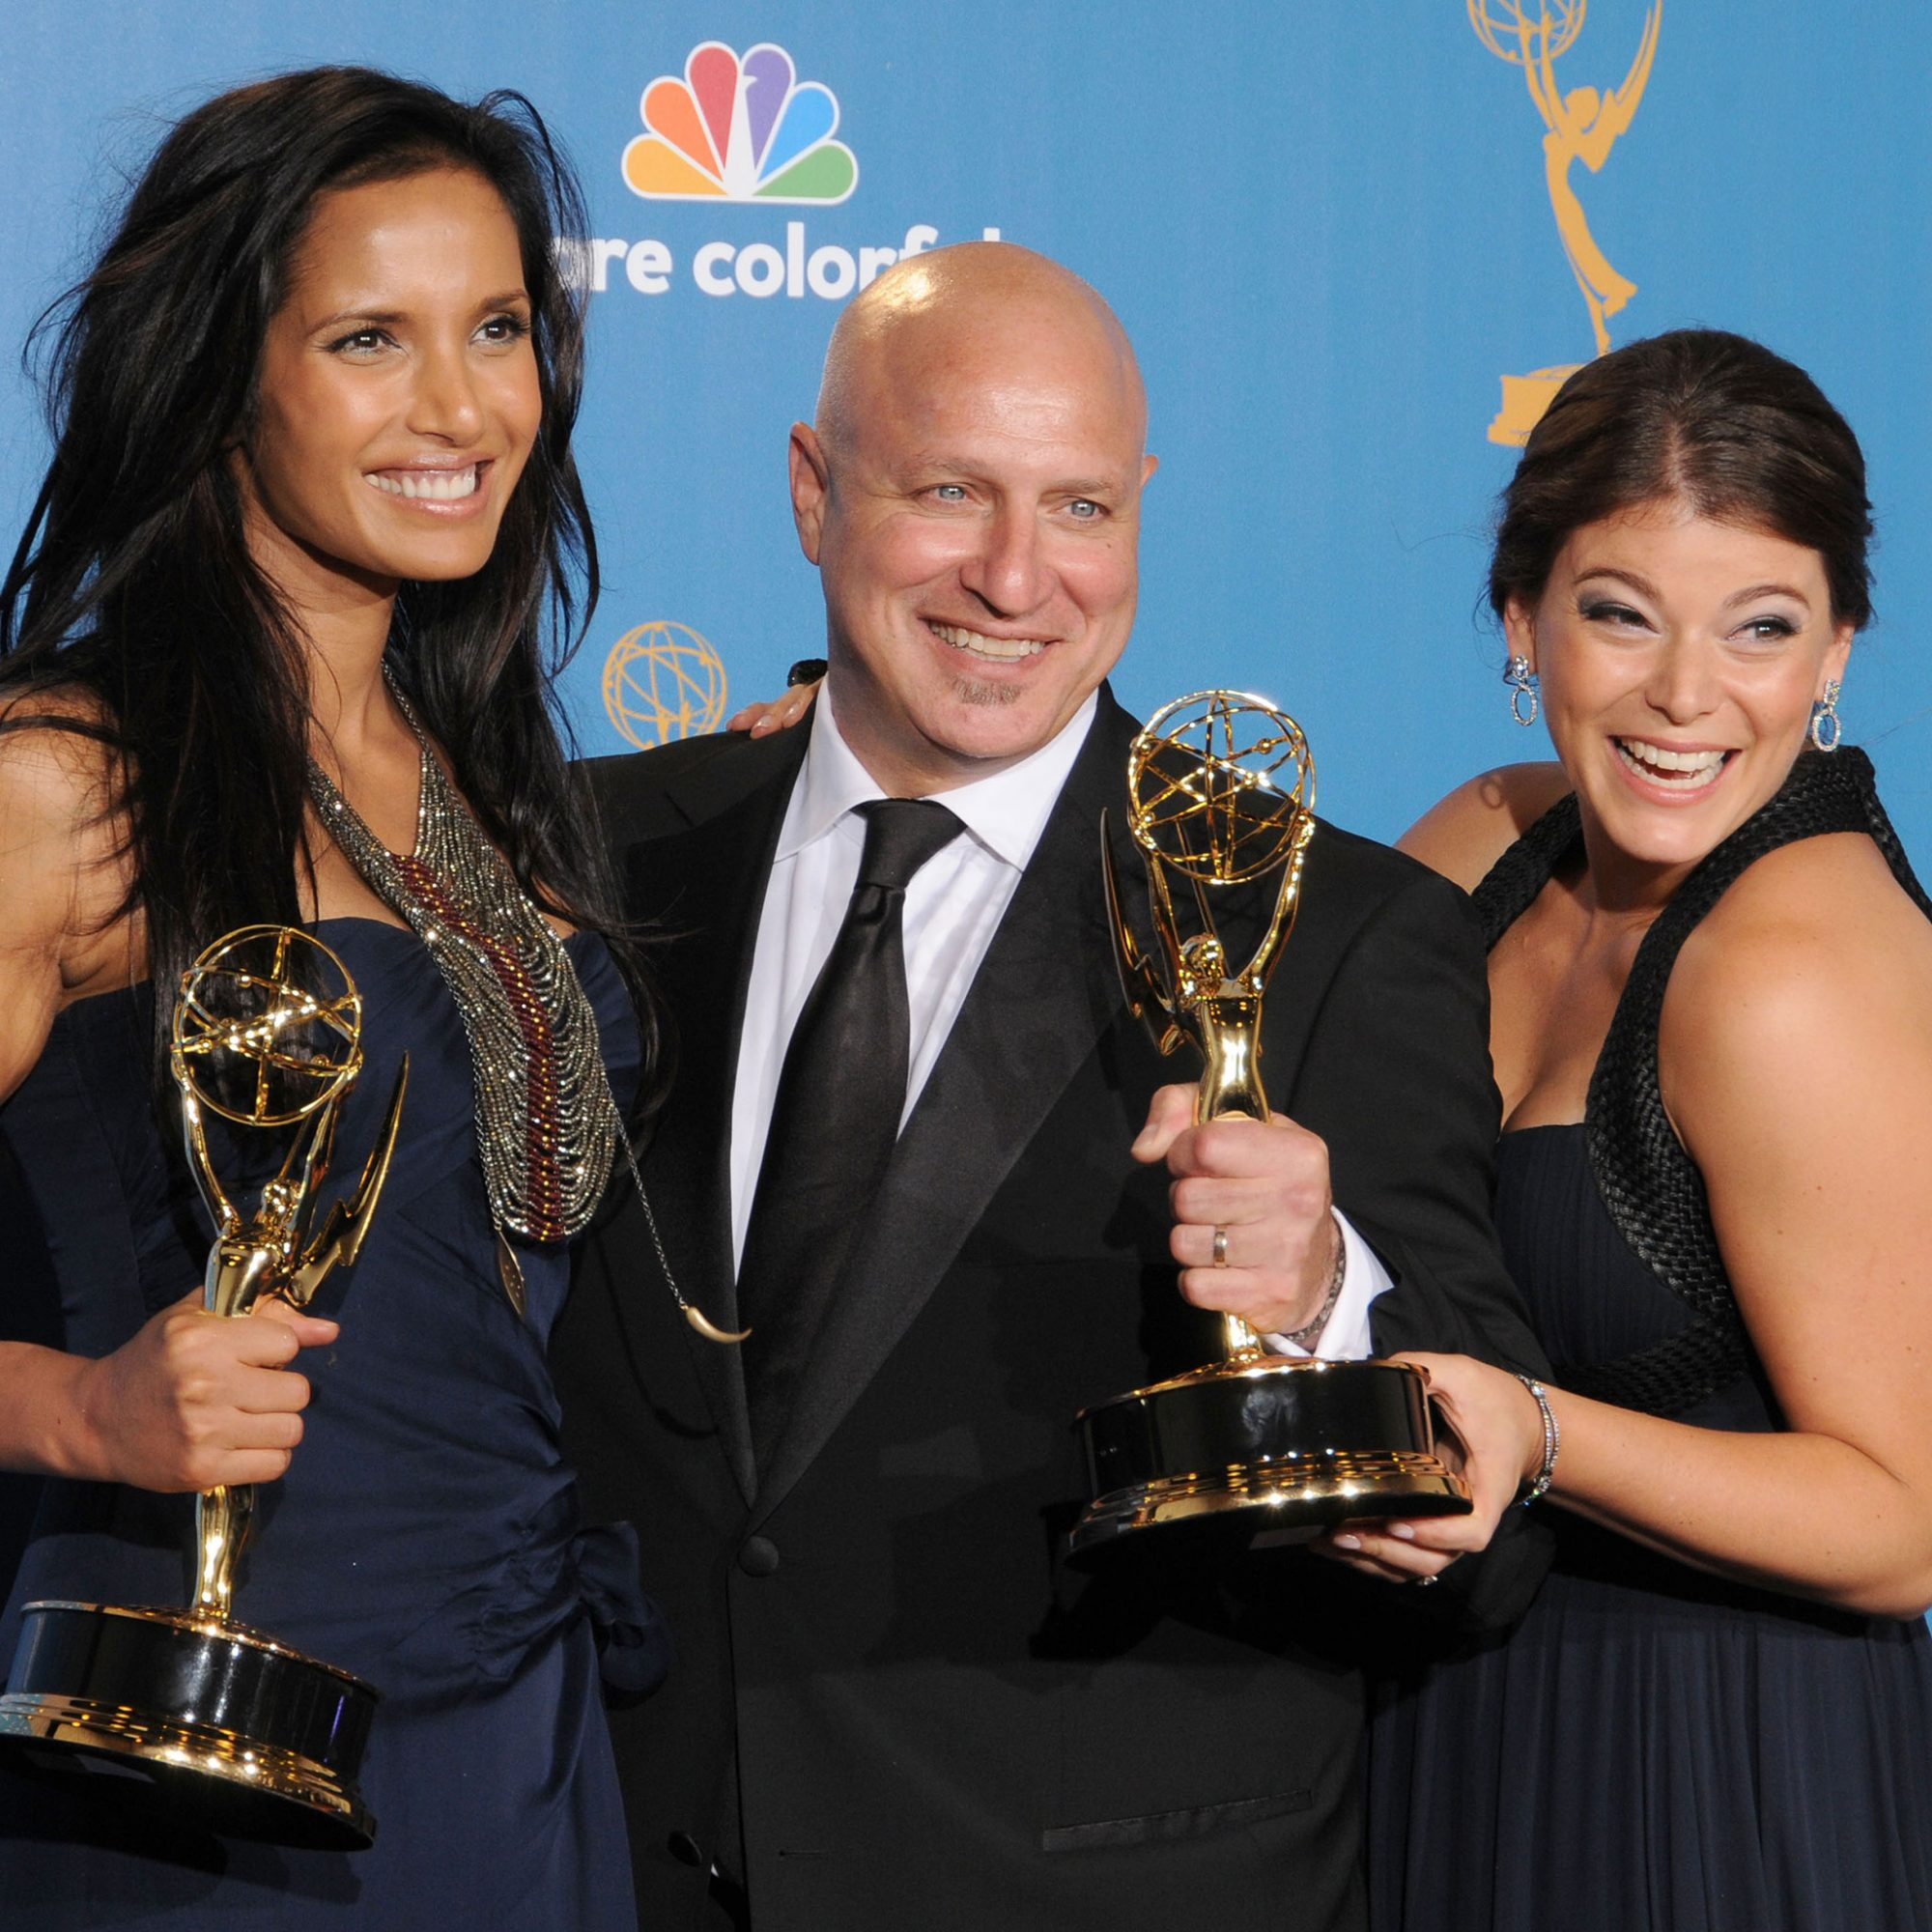 62nd-primetime-emmy-awards-fwx